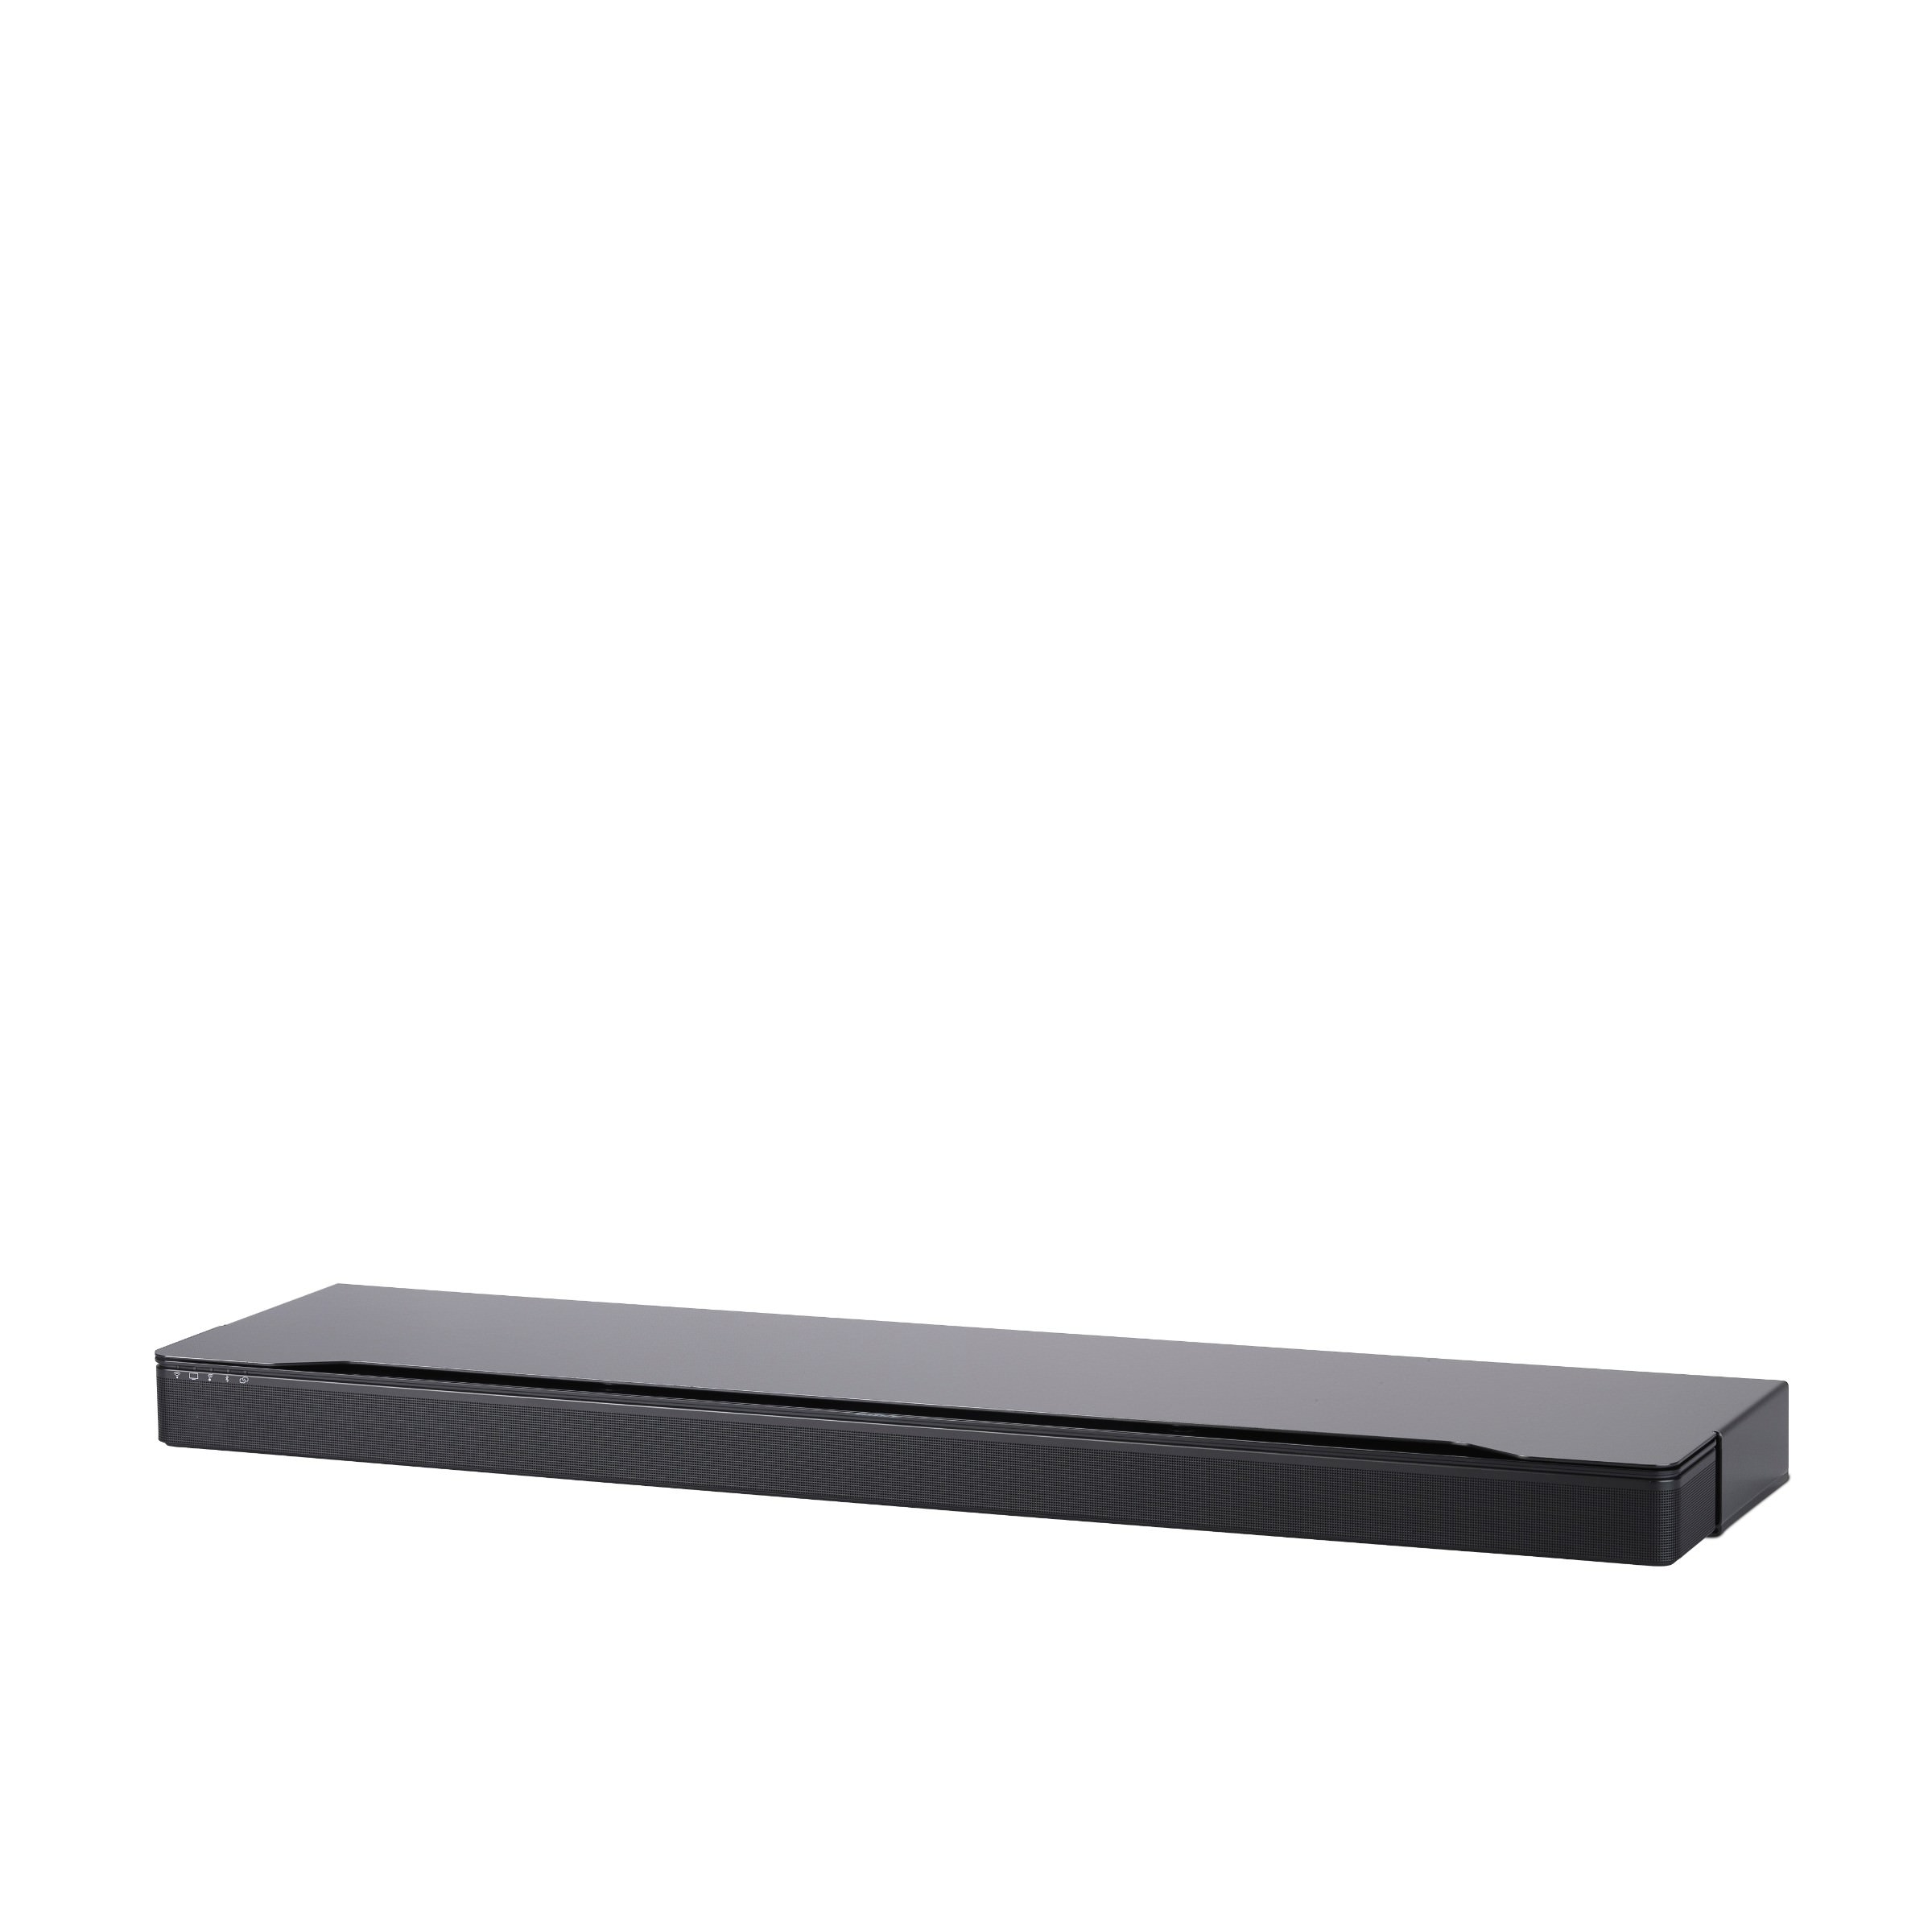 Bose SoundTouch 300 tv standaard 2